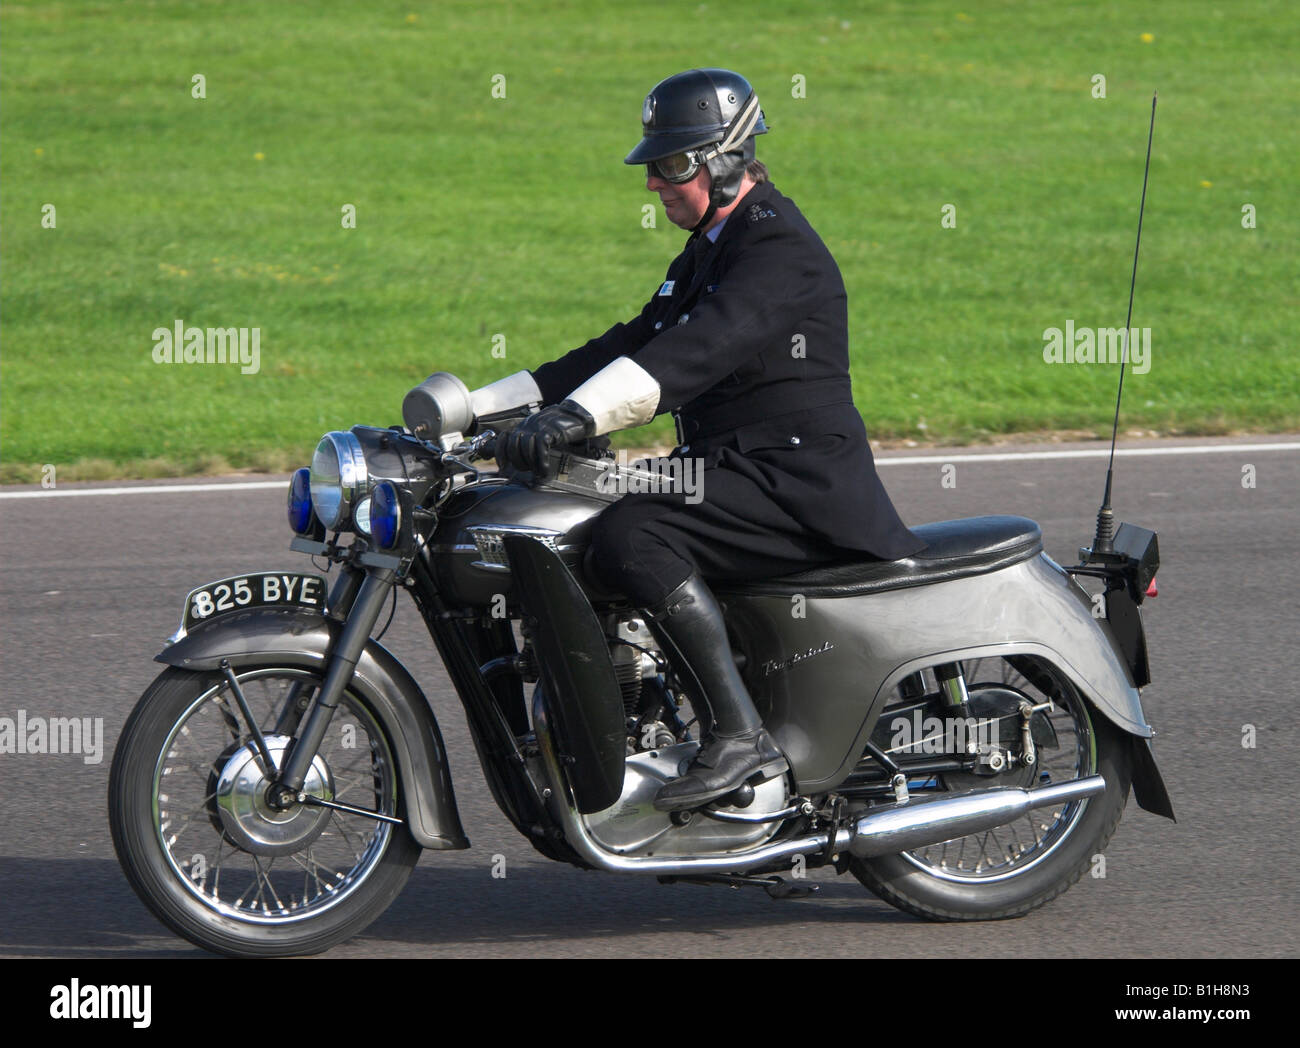 1950s Policeman on a Motorcycle Stock Photo